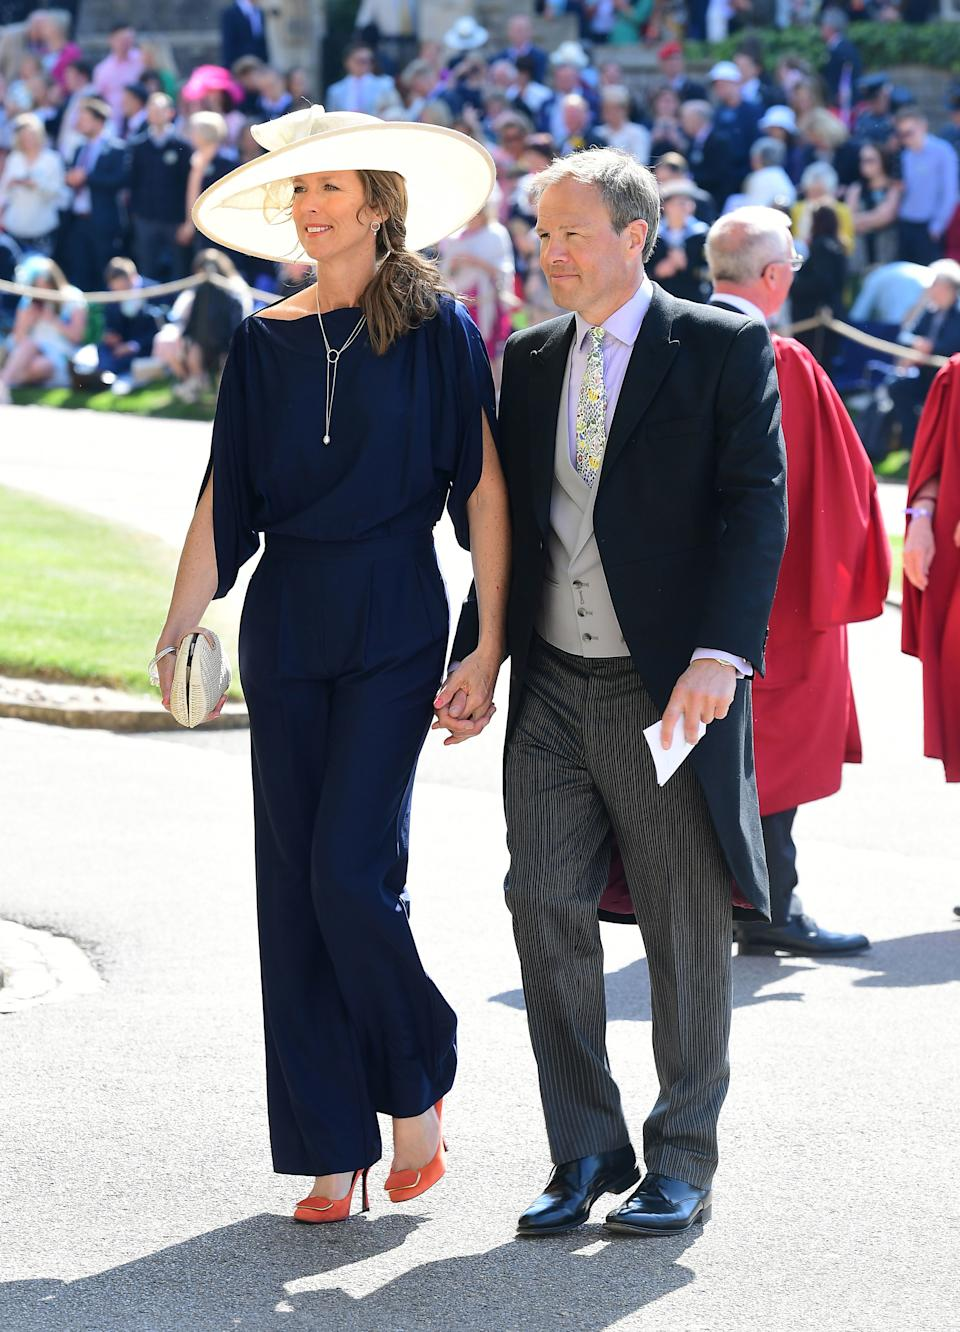 WINDSOR, UNITED KINGDOM - MAY 19: Tom and Claudia Bradby arrive at St George's Chapel at Windsor Castle before the wedding of Prince Harry to Meghan Markle on May 19, 2018 in Windsor, England. (Photo by Ian West - WPA Pool/Getty Images)